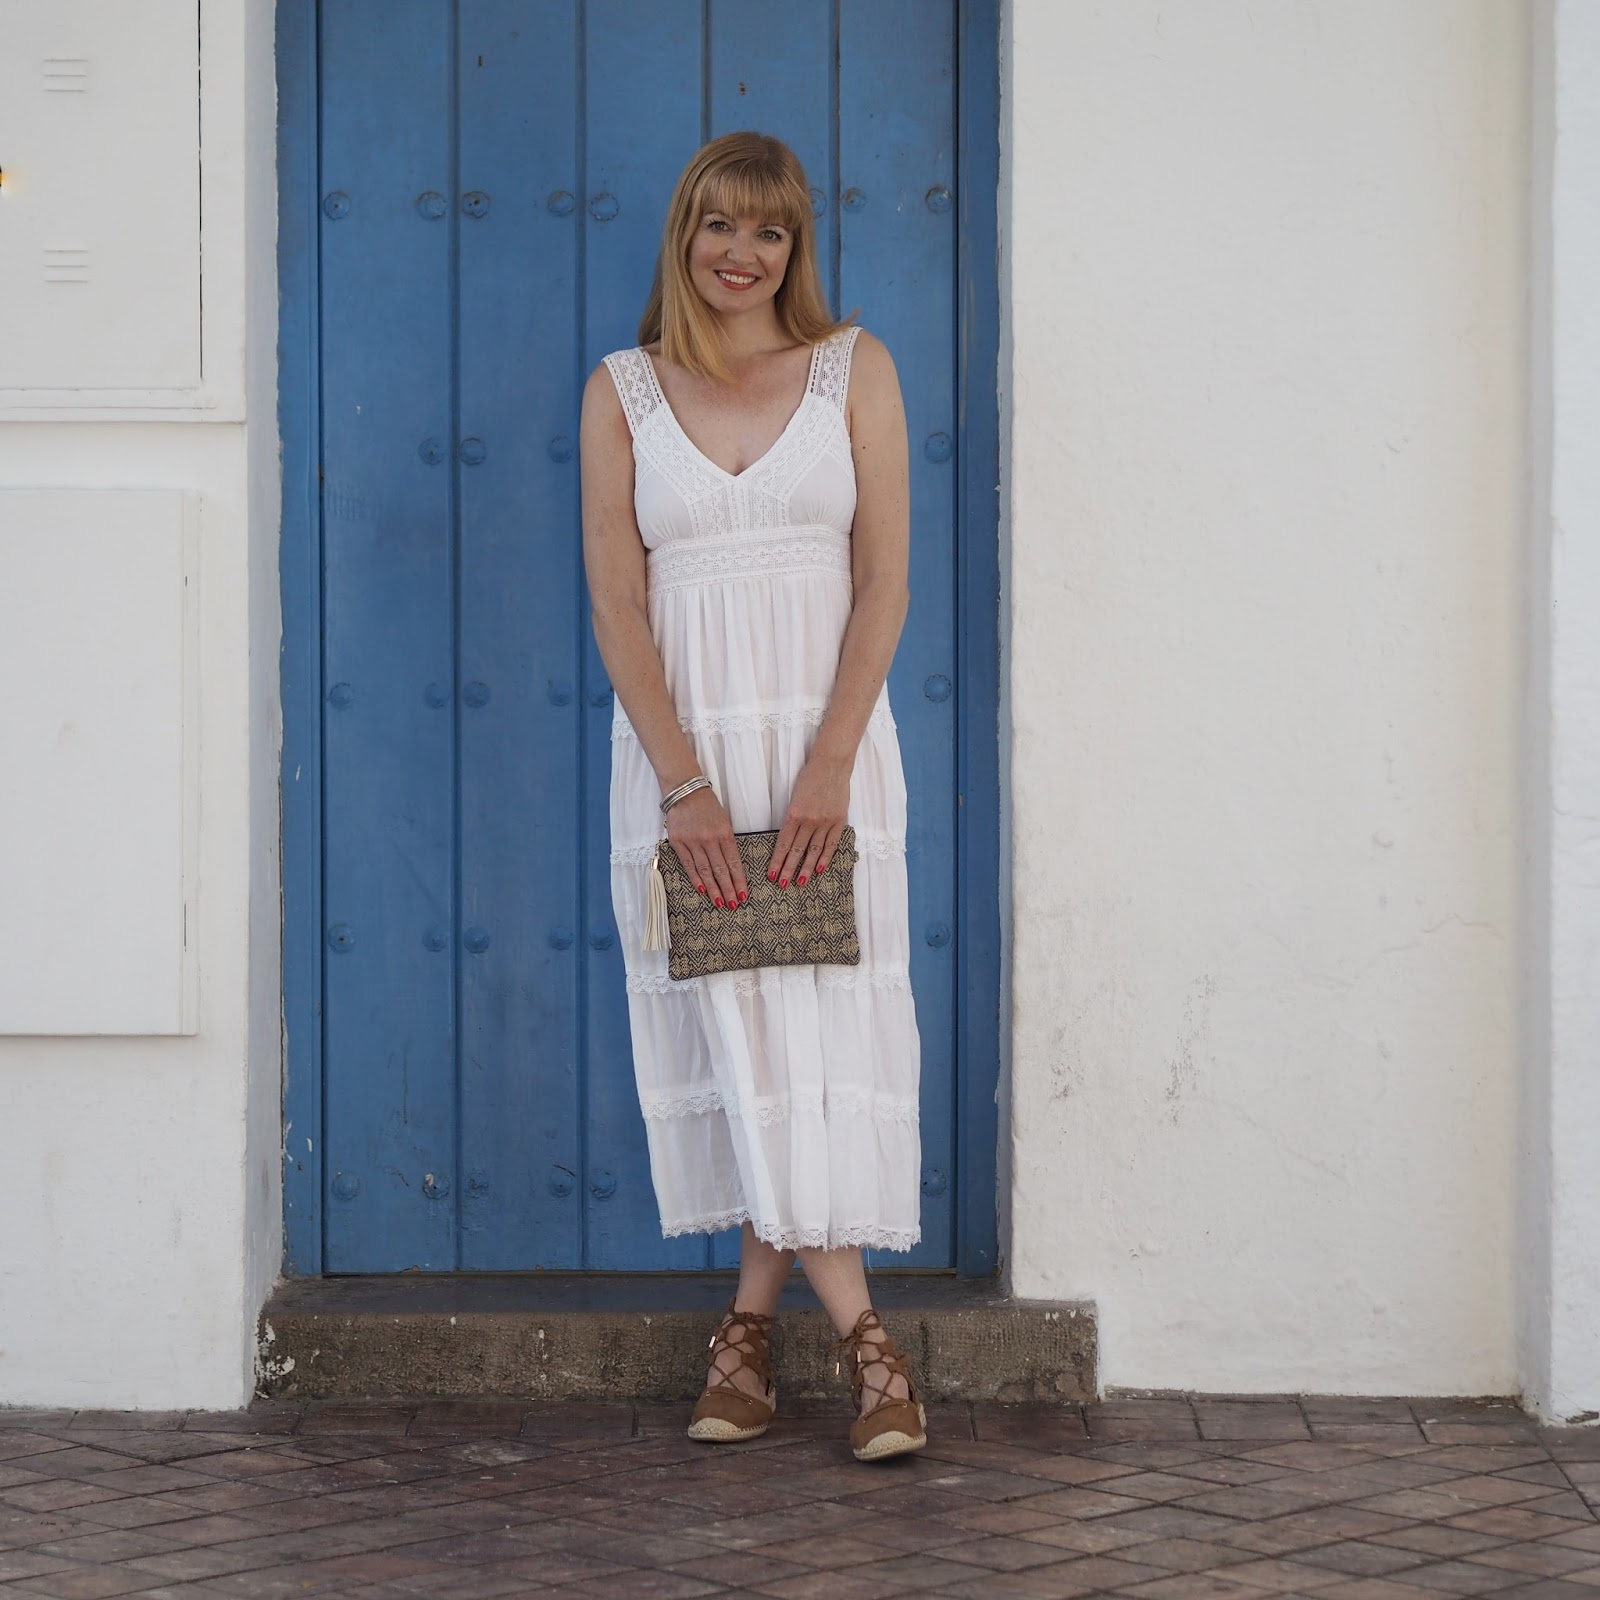 White summer midi dress and espadrilles, Nerja